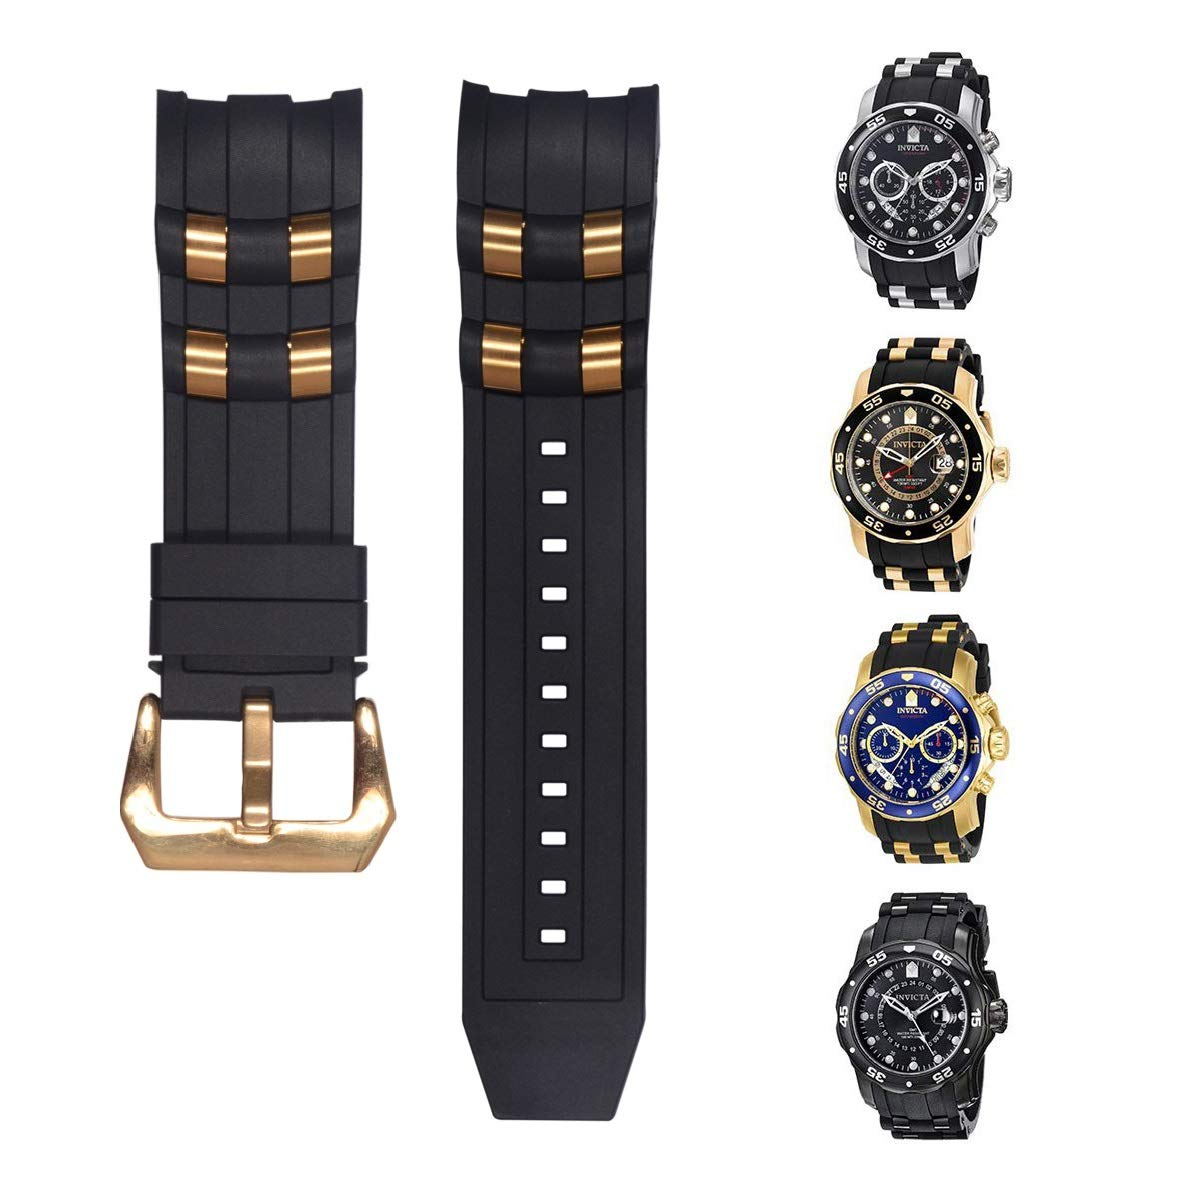 Vicdason for Invicta Pro Diver Watch Bands Replacement Strap with Bukcle Metal Inserts - Black Rubber Silicone Invicta Watch Strap by Vicdason (Image #4)